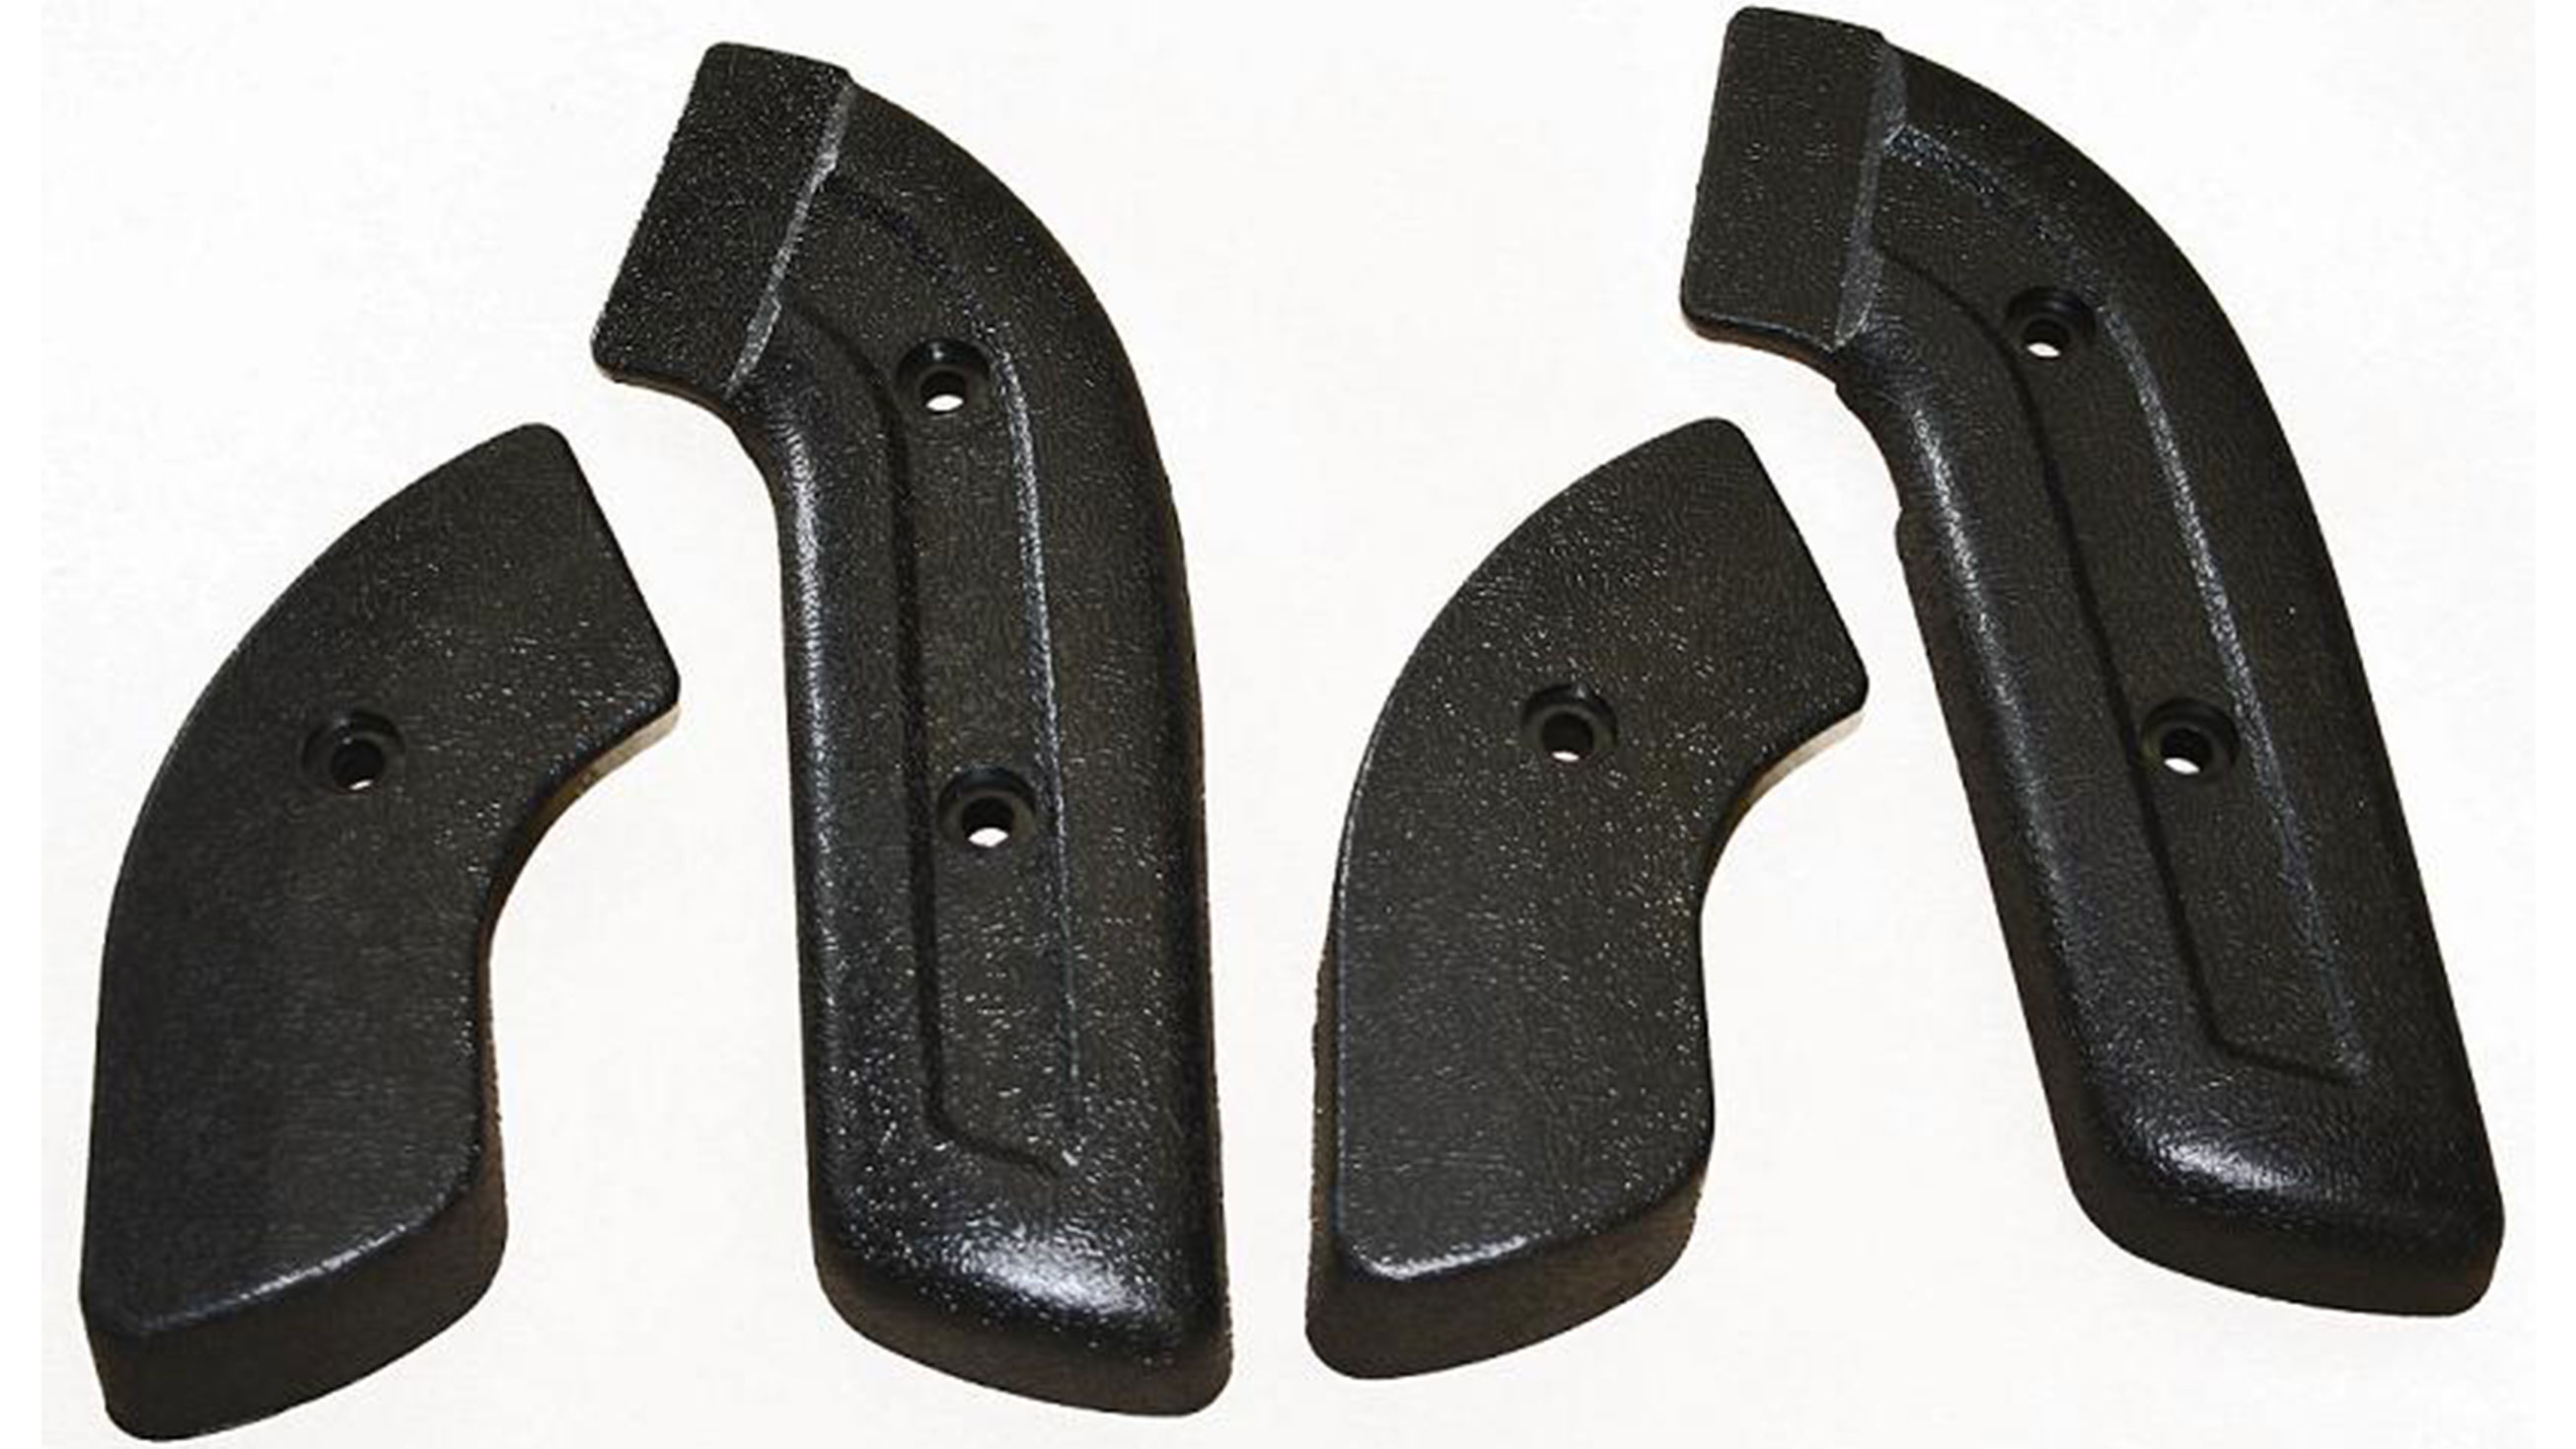 Front Bucket Seat Hinge Covers - Black, Full Set, 68-77 Ford Bronco, New